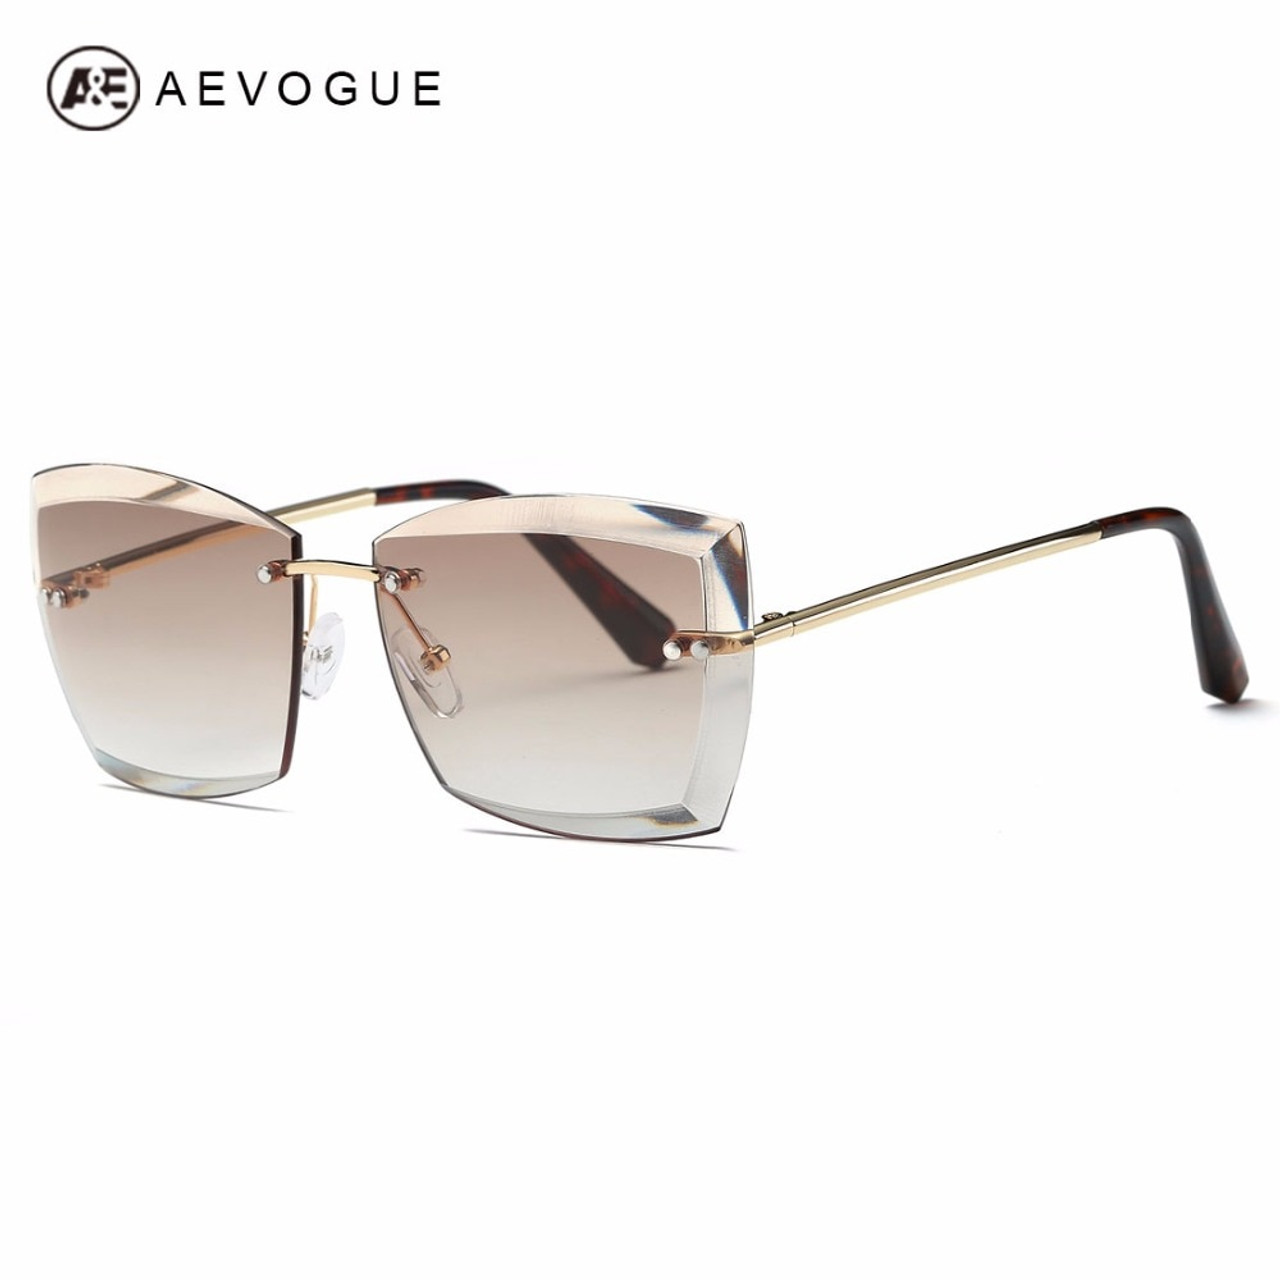 fef2c0b30318f AEVOGUE Sunglasses For Women Square Rimless Diamond cutting Lens Brand  Designer Fashion Shades Sun Glasses AE0528 ...